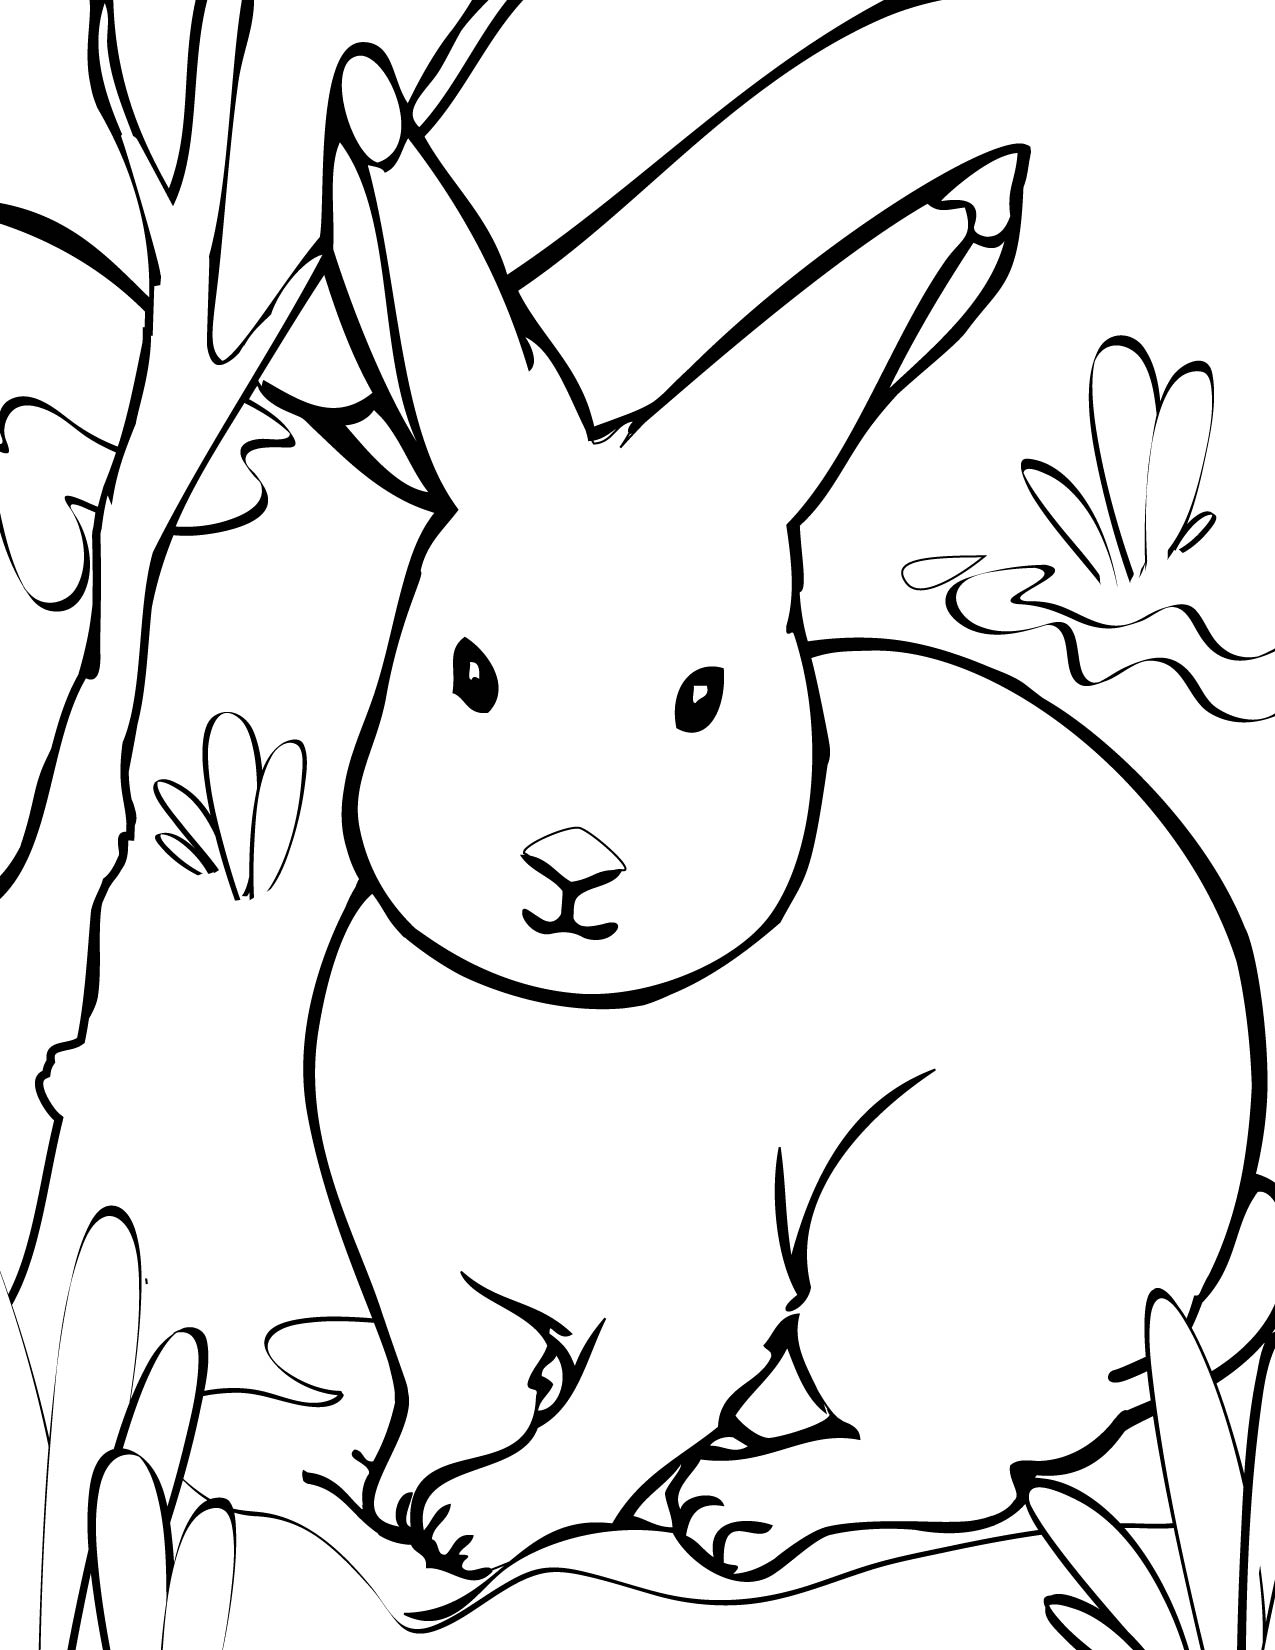 Polar animals coloring pages for kids - Arctic Hare